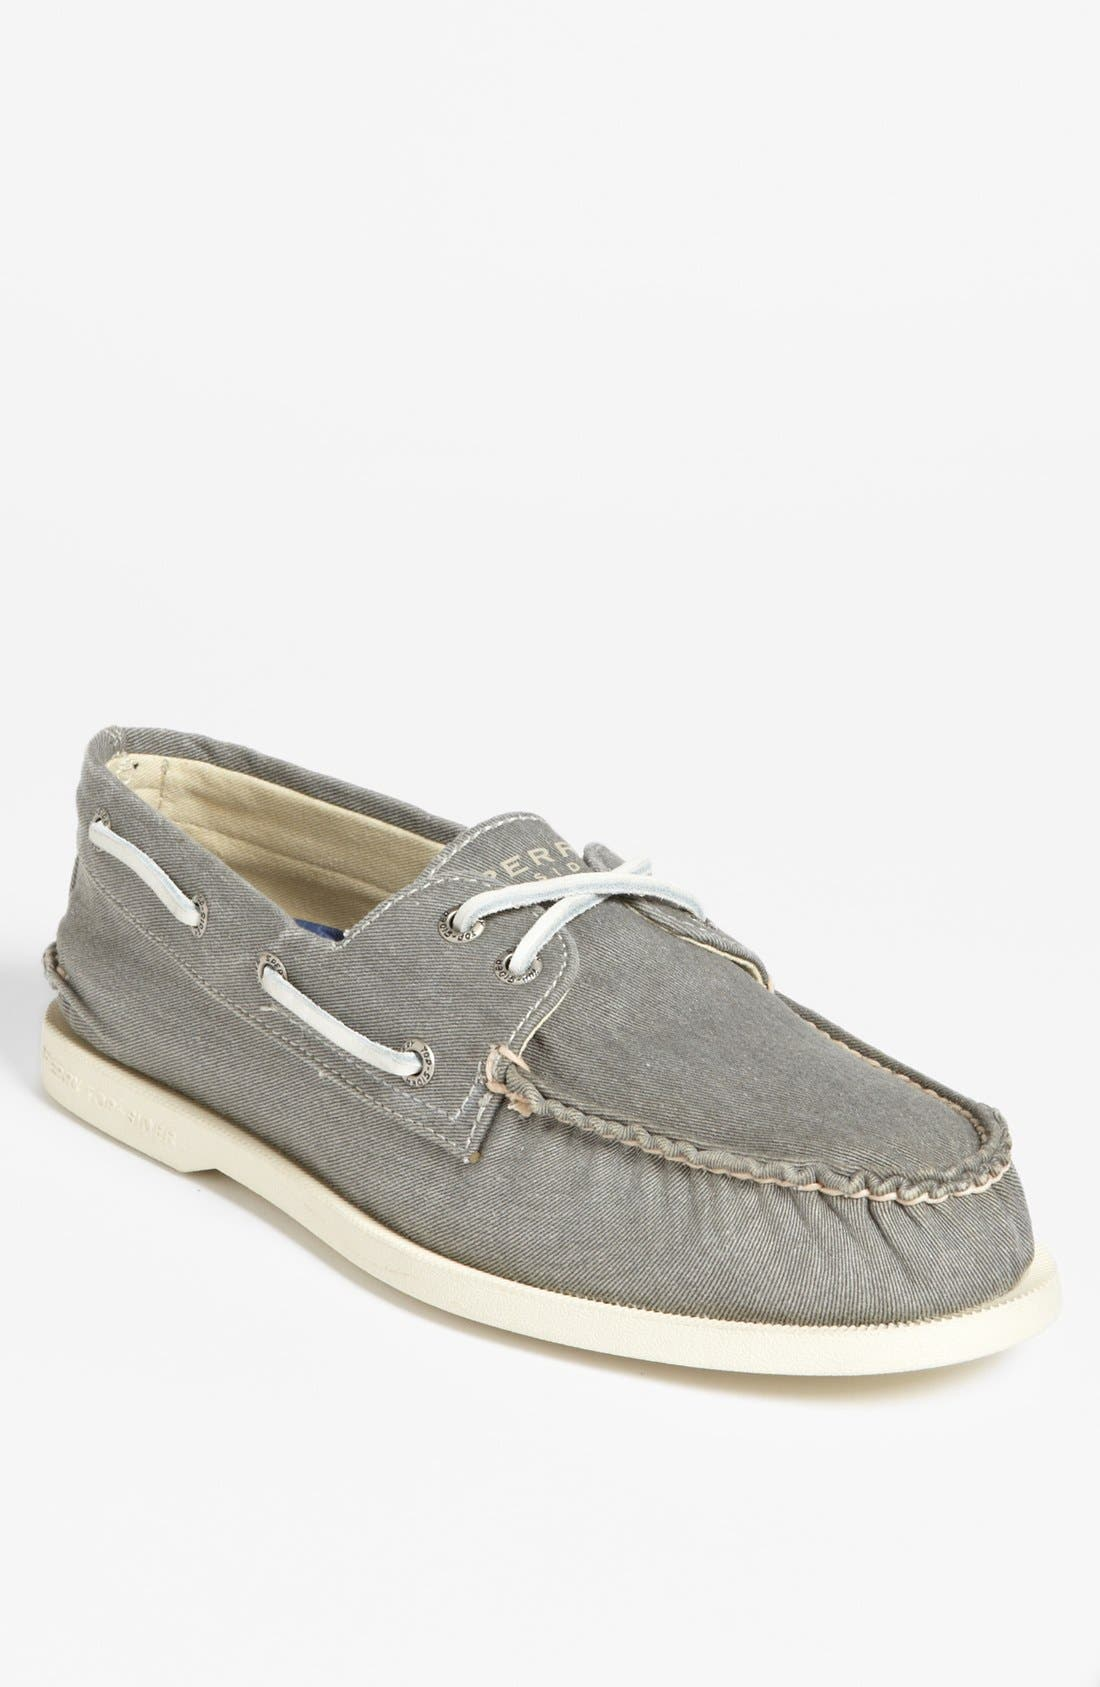 Alternate Image 1 Selected - Sperry Top-Sider® 'Authentic Original' Canvas Boat Shoe